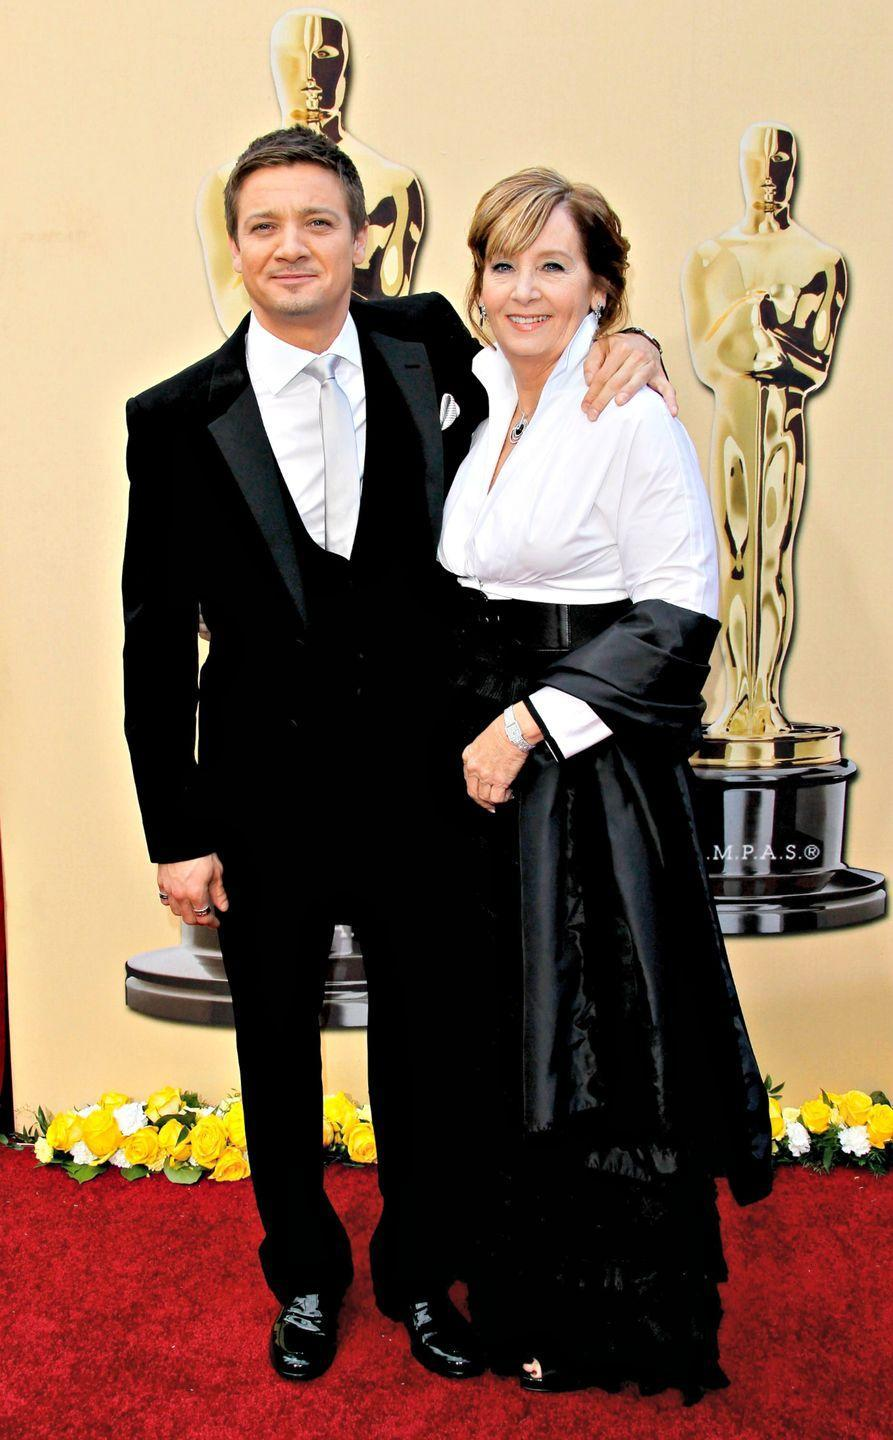 <p>Jeremy kept his arm around mom Valerie Clearly as they posed for photos at the 2010 Oscars. </p>